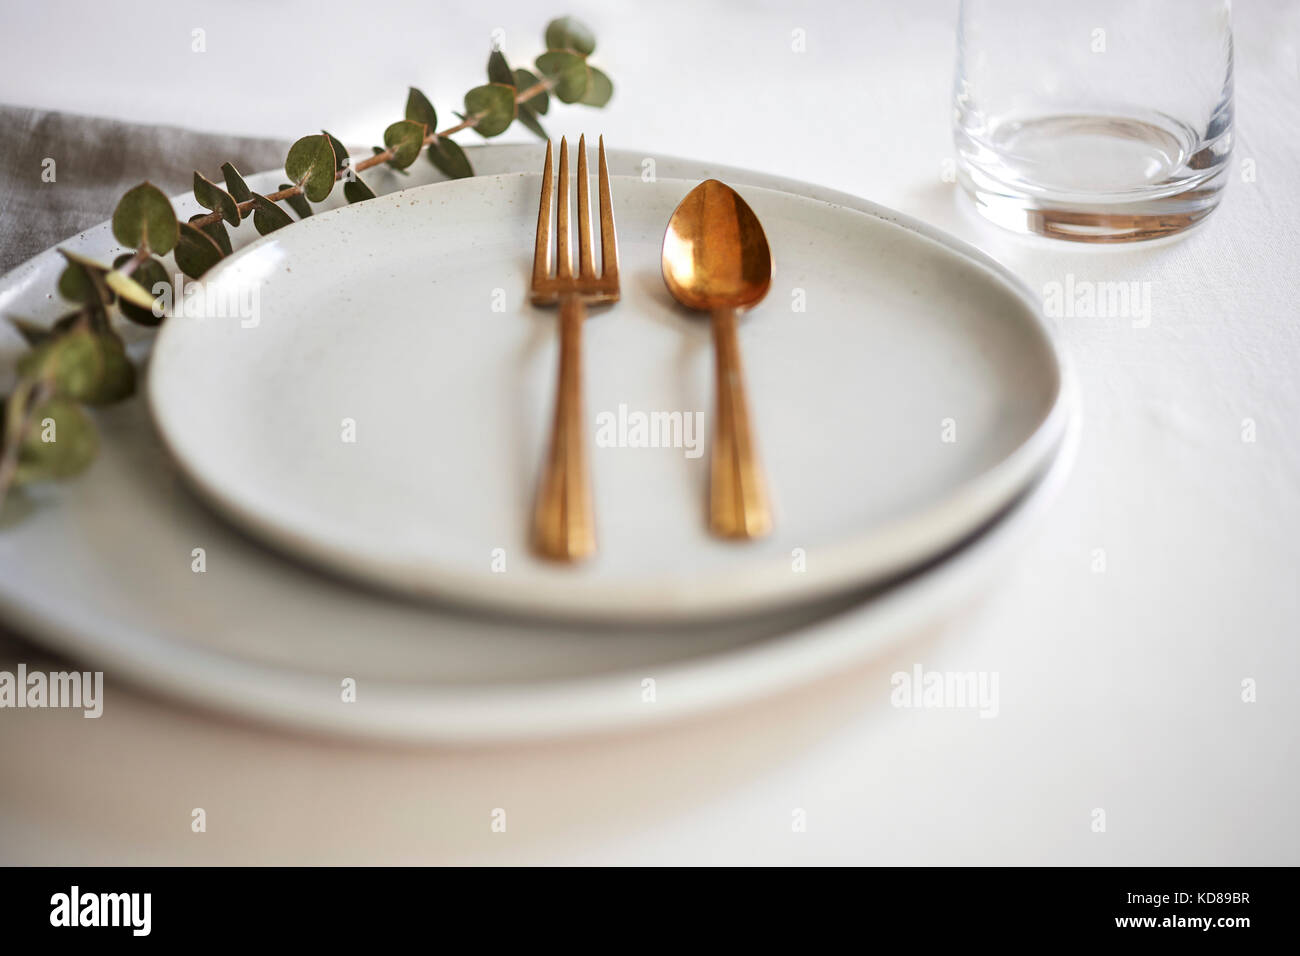 Minimal Table Setting With Handmade Off White Plates Gold Silverware Stock Photo Alamy